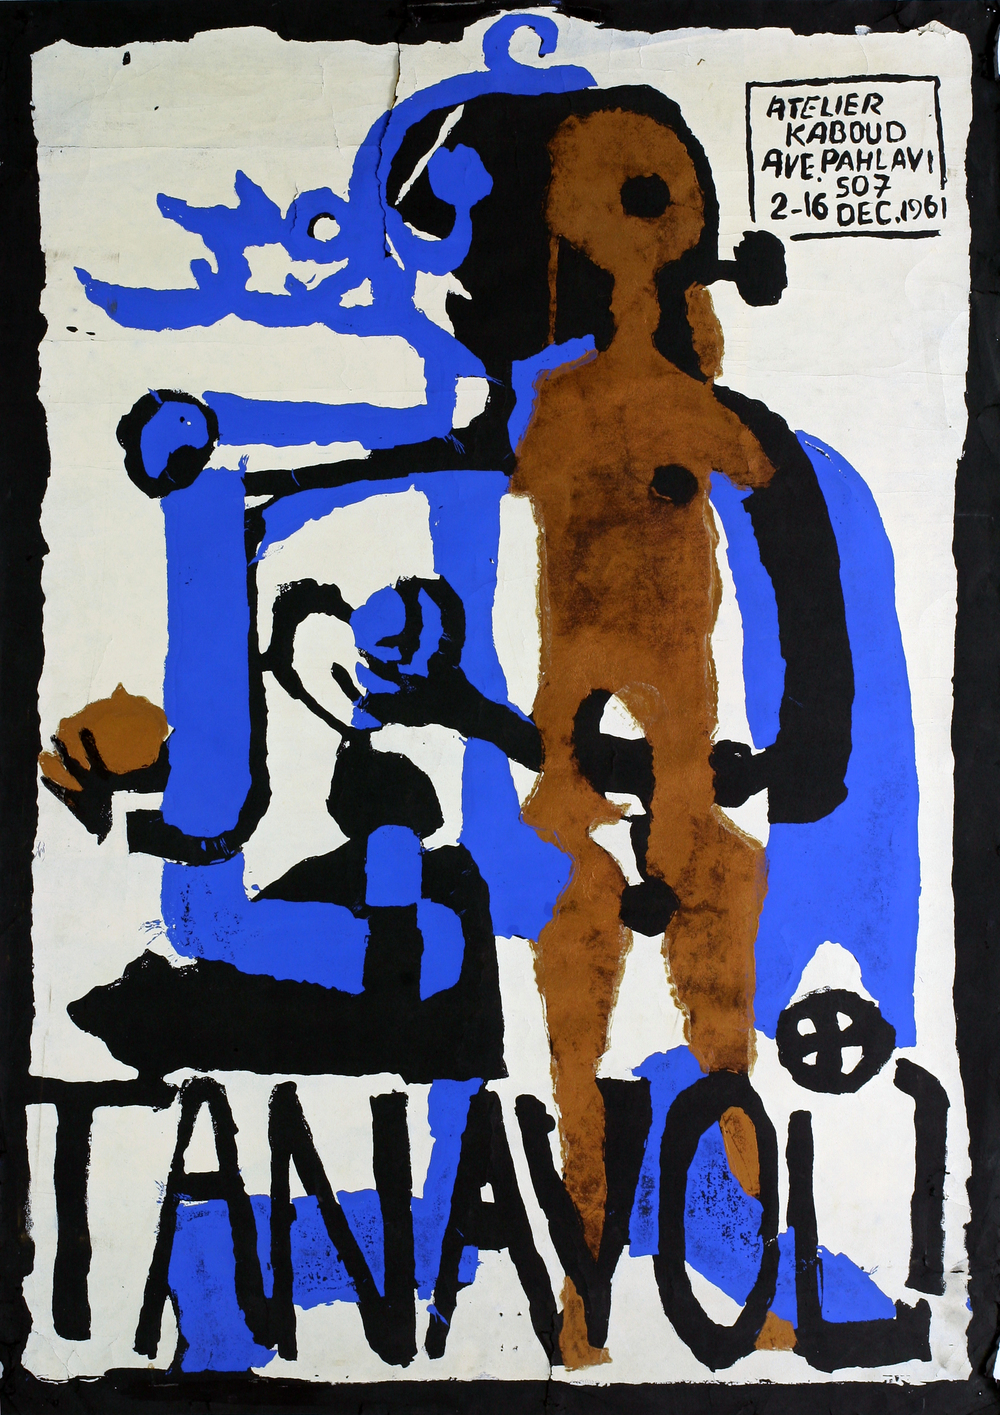 Poster for Exhibition (1961)